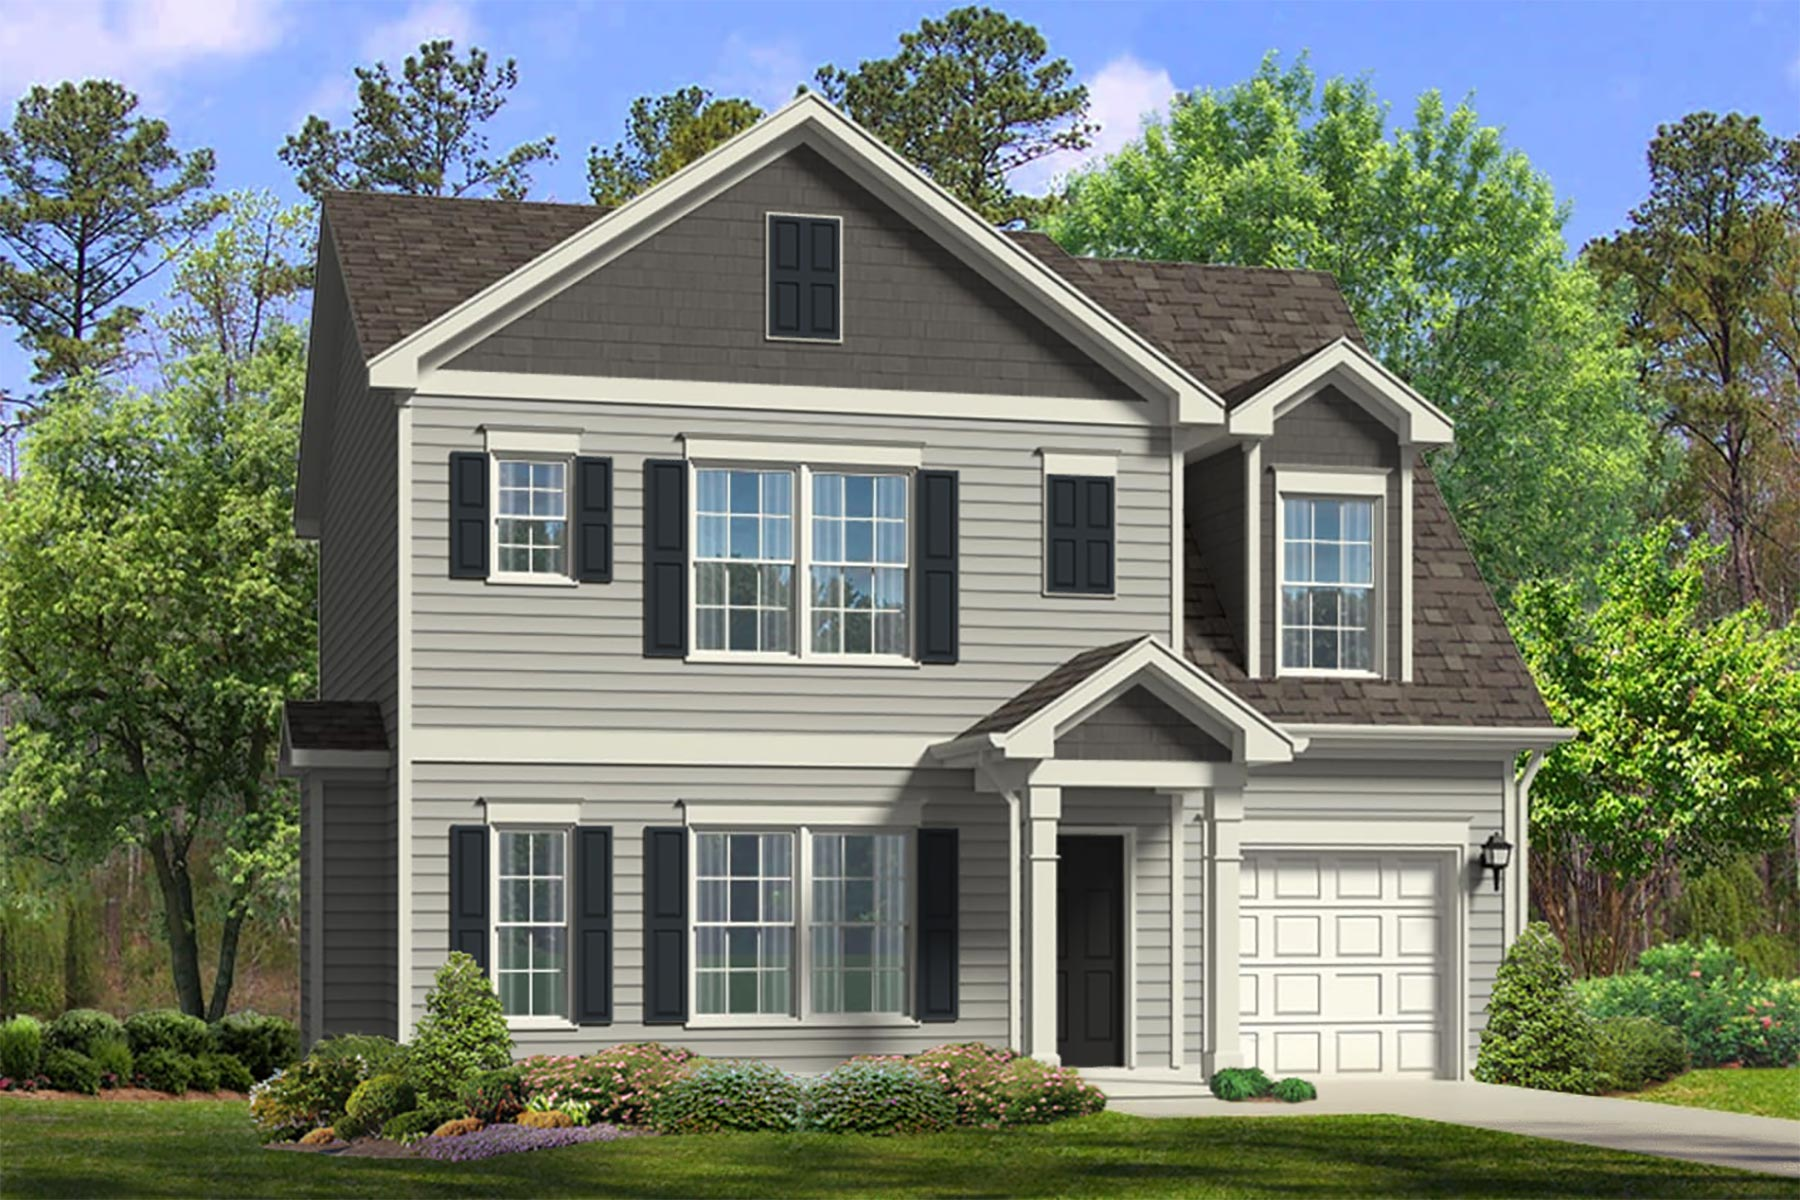 Beech Plan Elevation Front at Bristol in Clayton North Carolina by Mattamy Homes